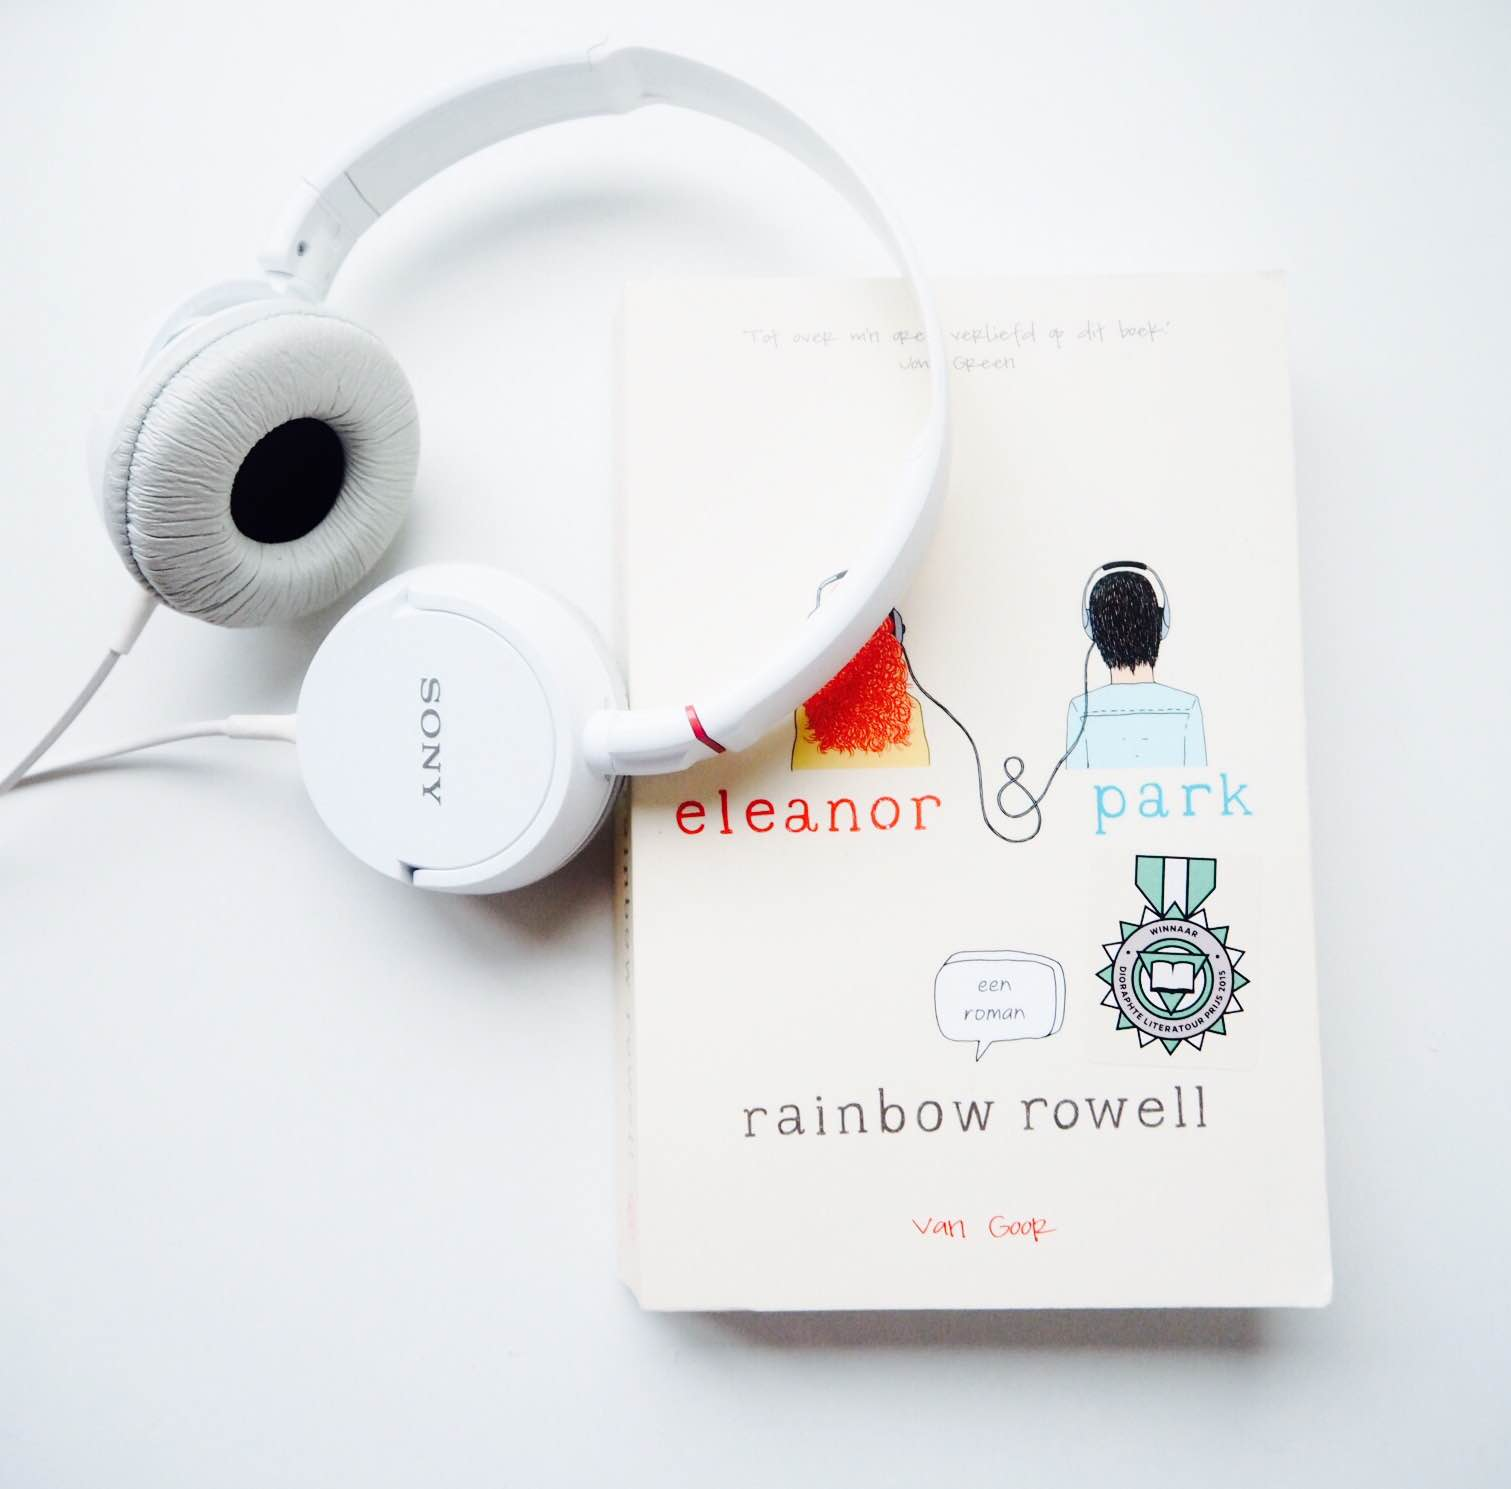 Recensie – Eleanor & Park door Rainbow Rowell